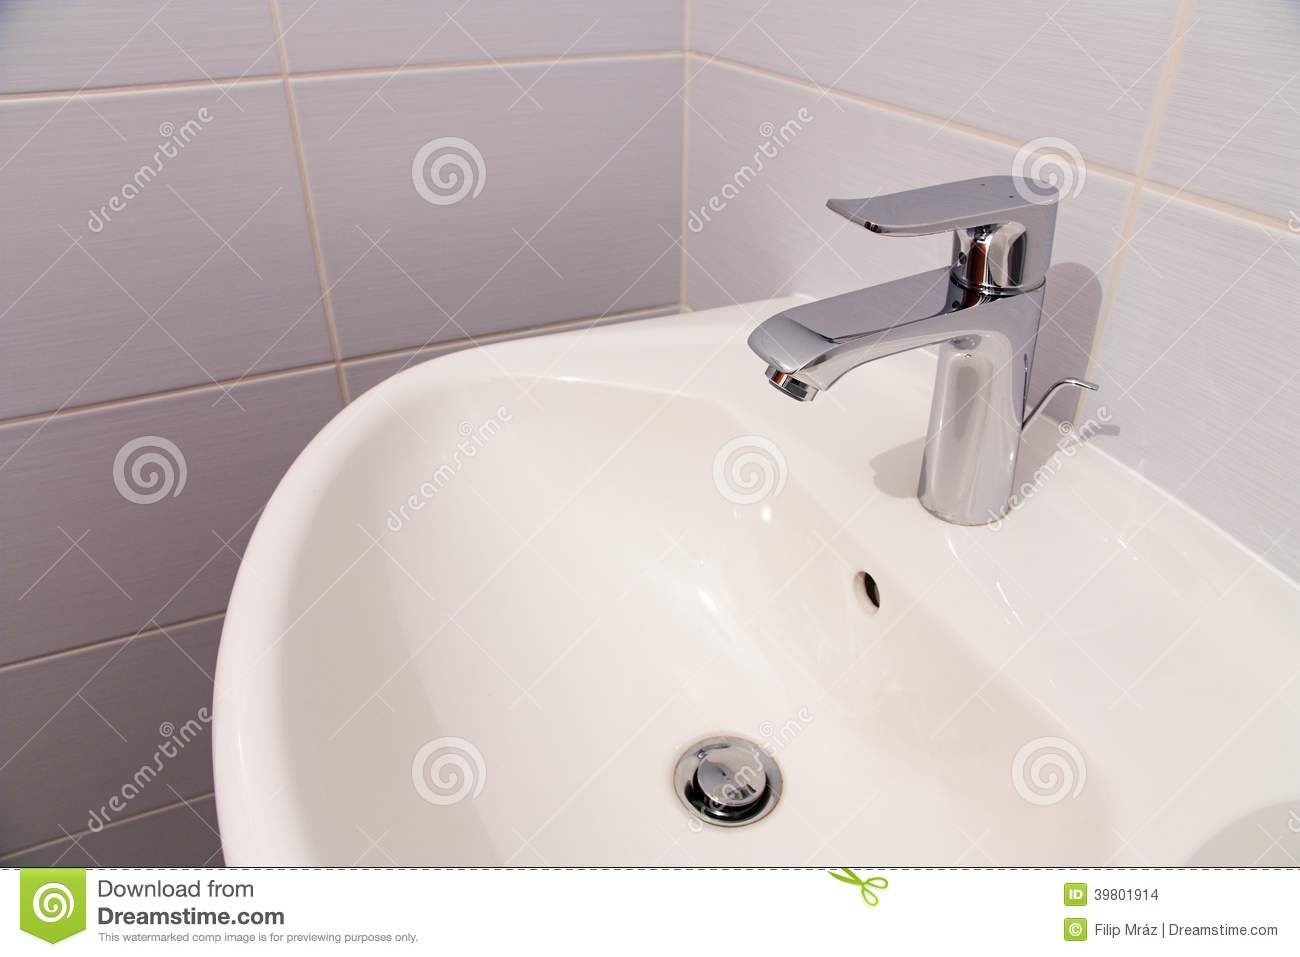 Bathroom tab stock photo. Image of home, metal, marble - 39801914